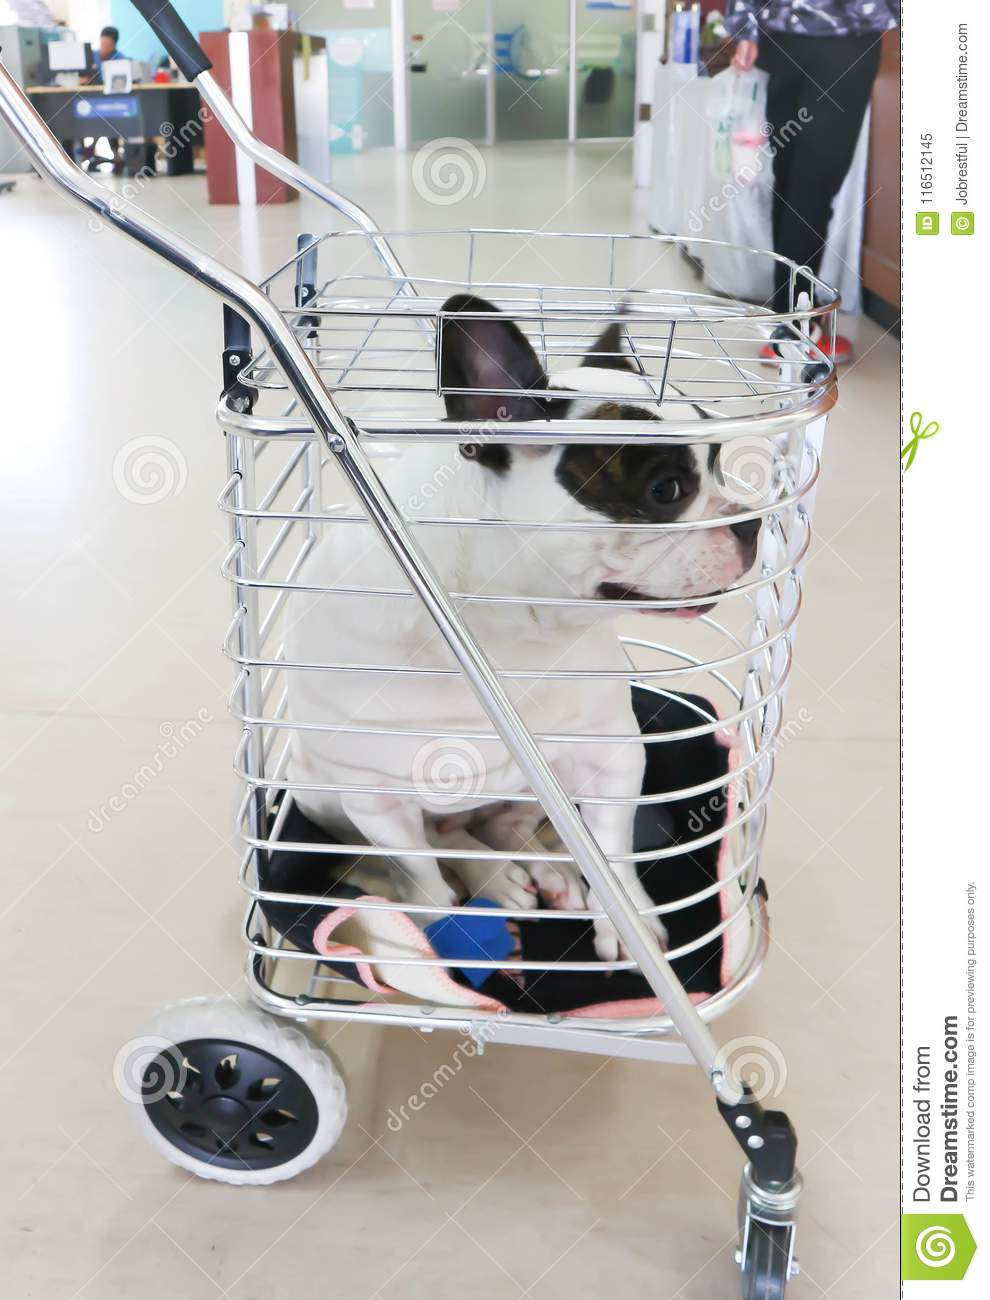 Dog in the trolley stock image  Image of bulldog, trolley